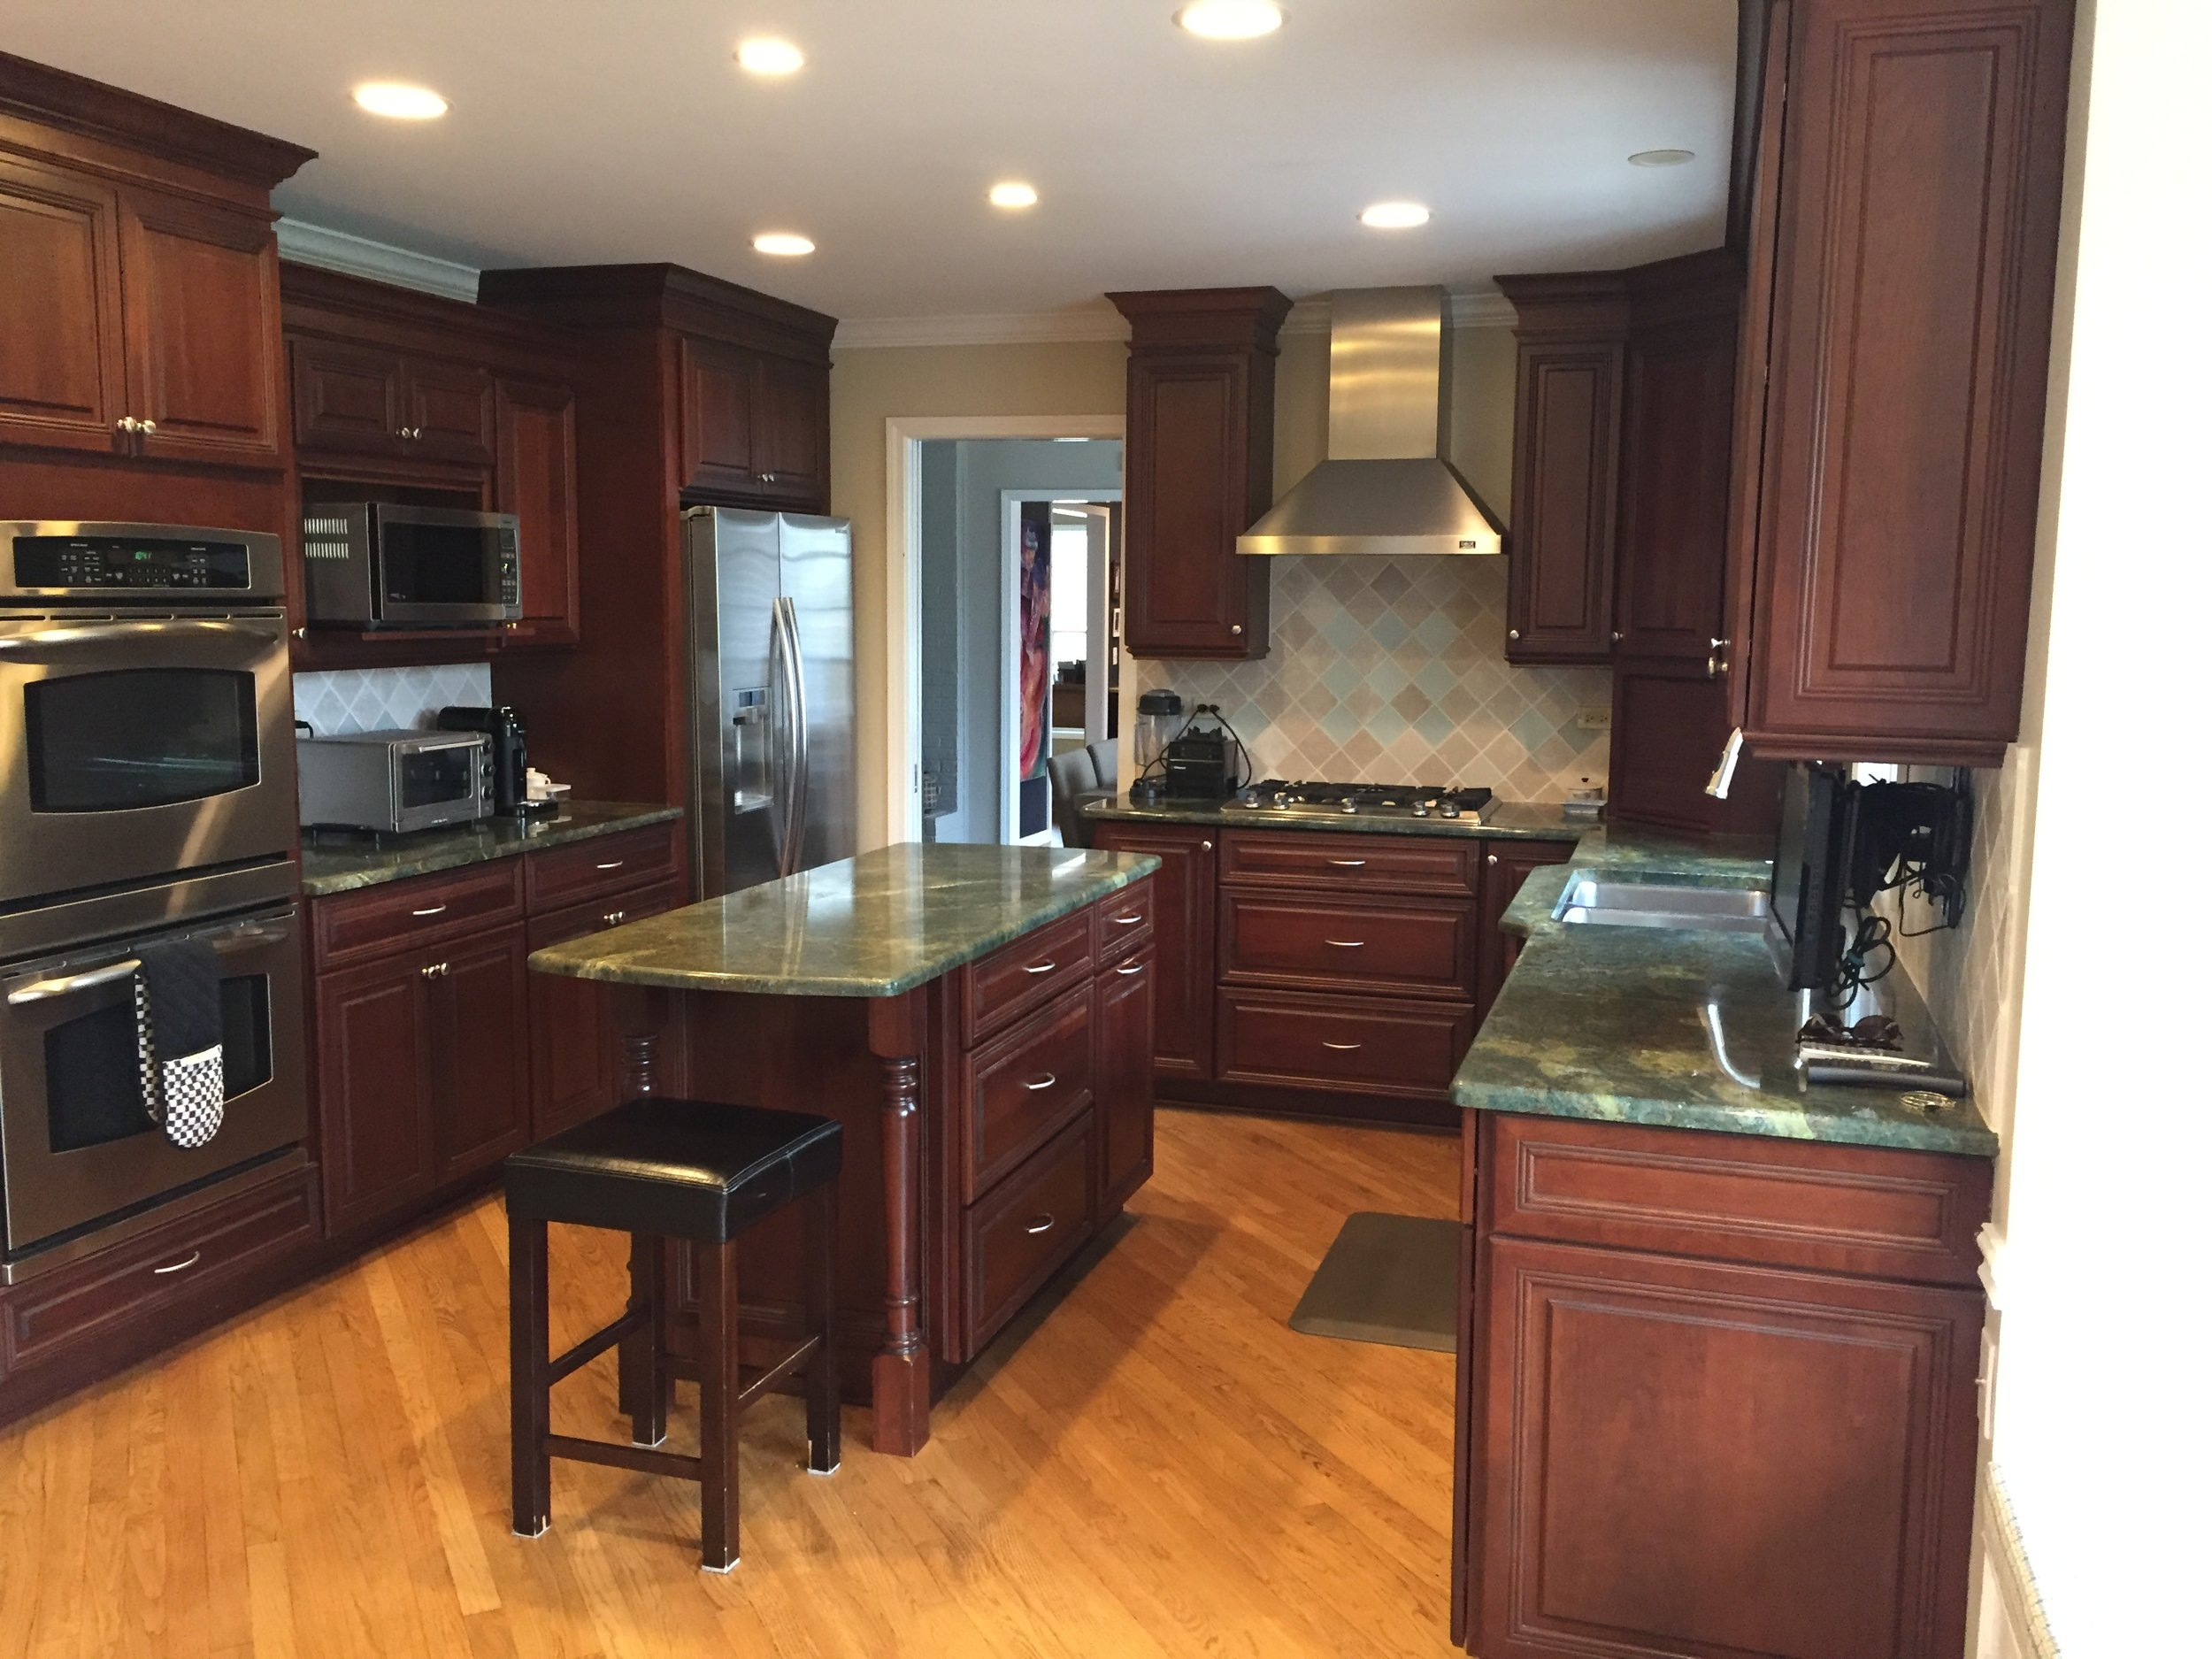 stainless steel kitchen cart with drawers remodeling ideas gorgeous omega dark wood cherry complete new ...